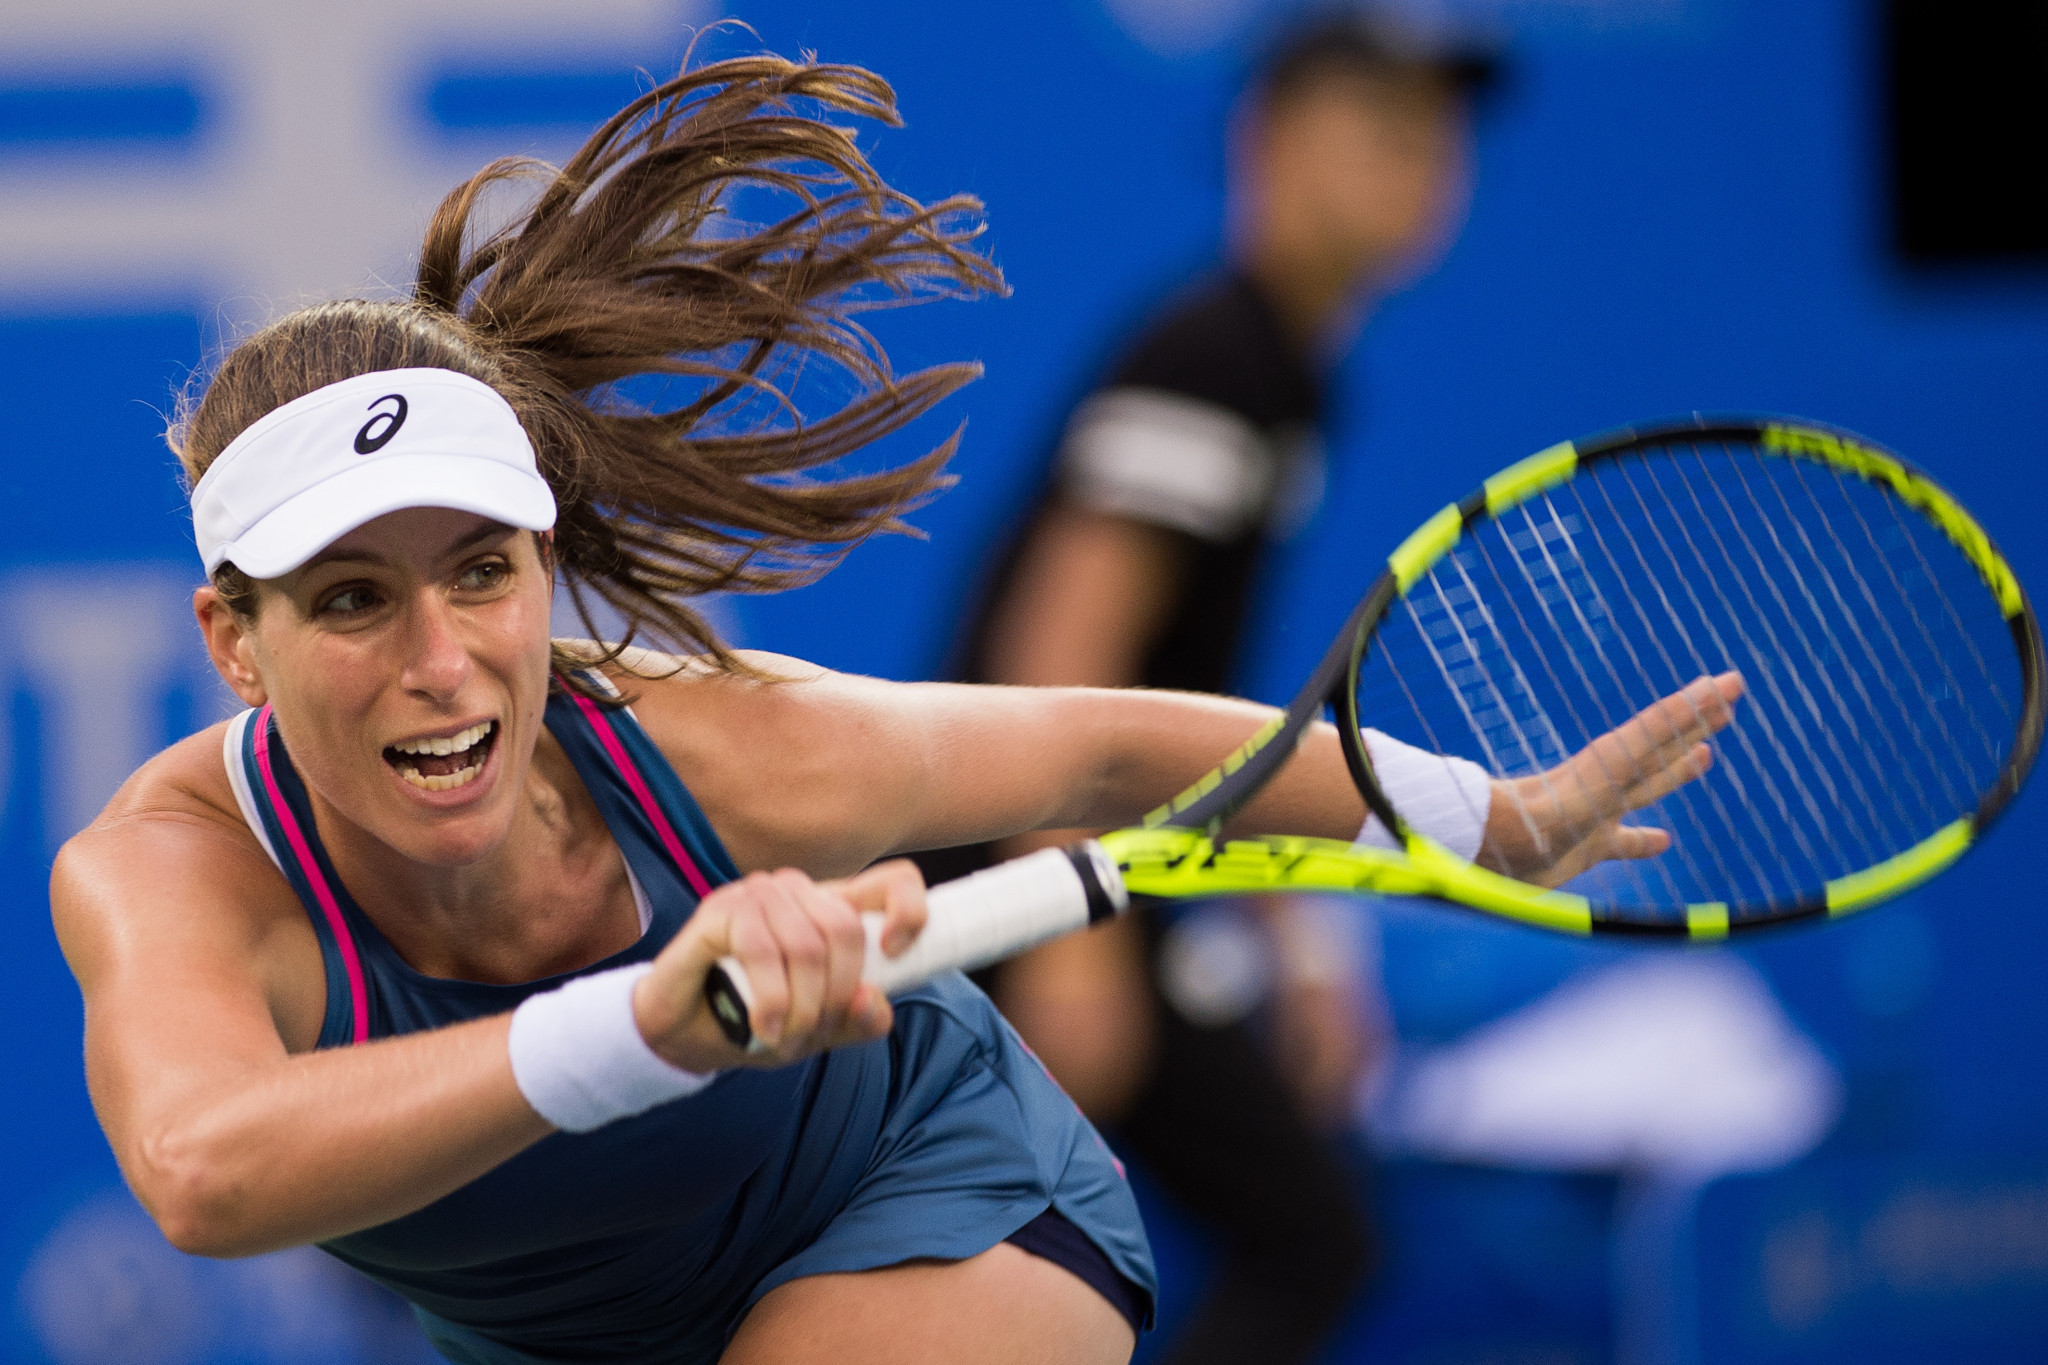 Johanna Konta won her first round match at the WTA Kremlin Cup 6-3, 7-5 today against Elise Mertens ©Getty Images